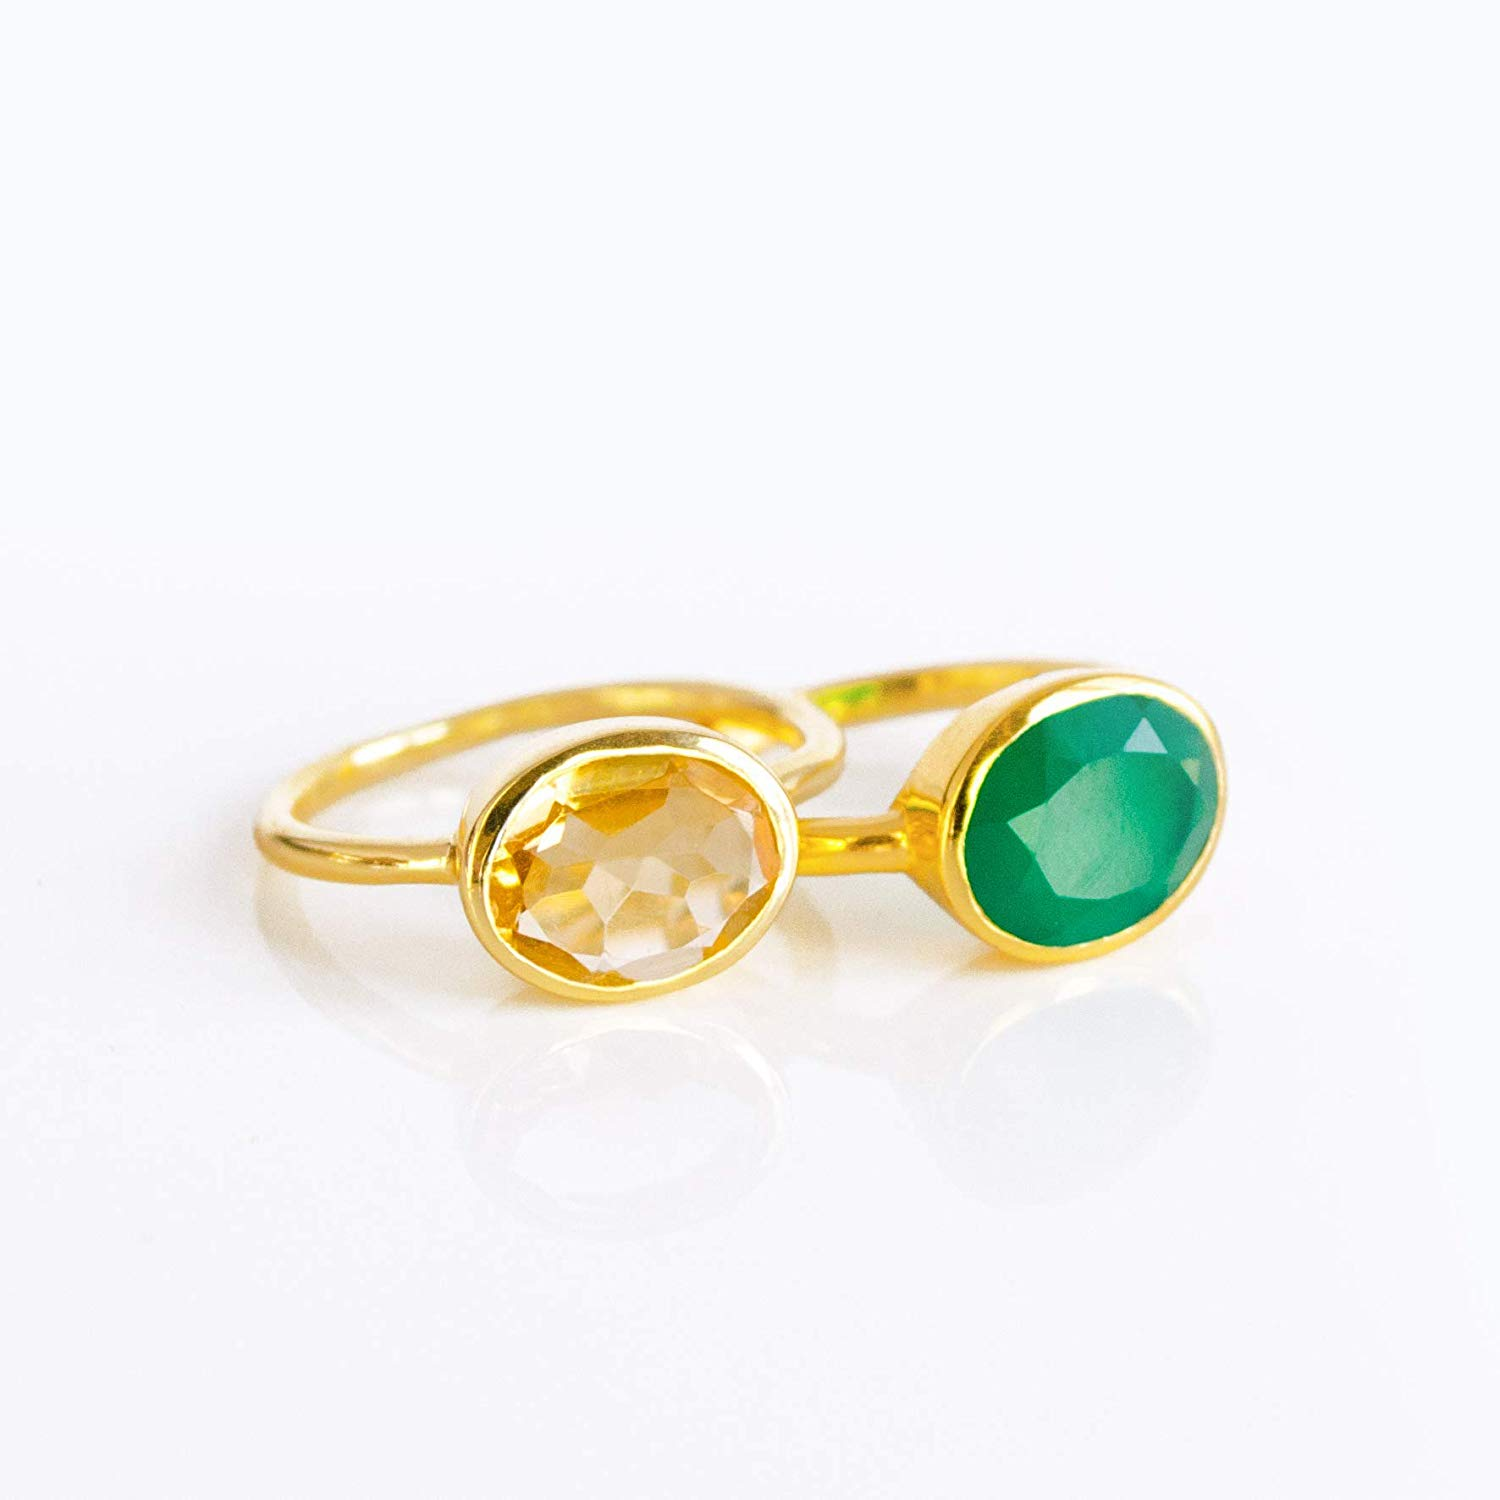 Nathis Lovely drop shaped ring with a green onyx gemstone